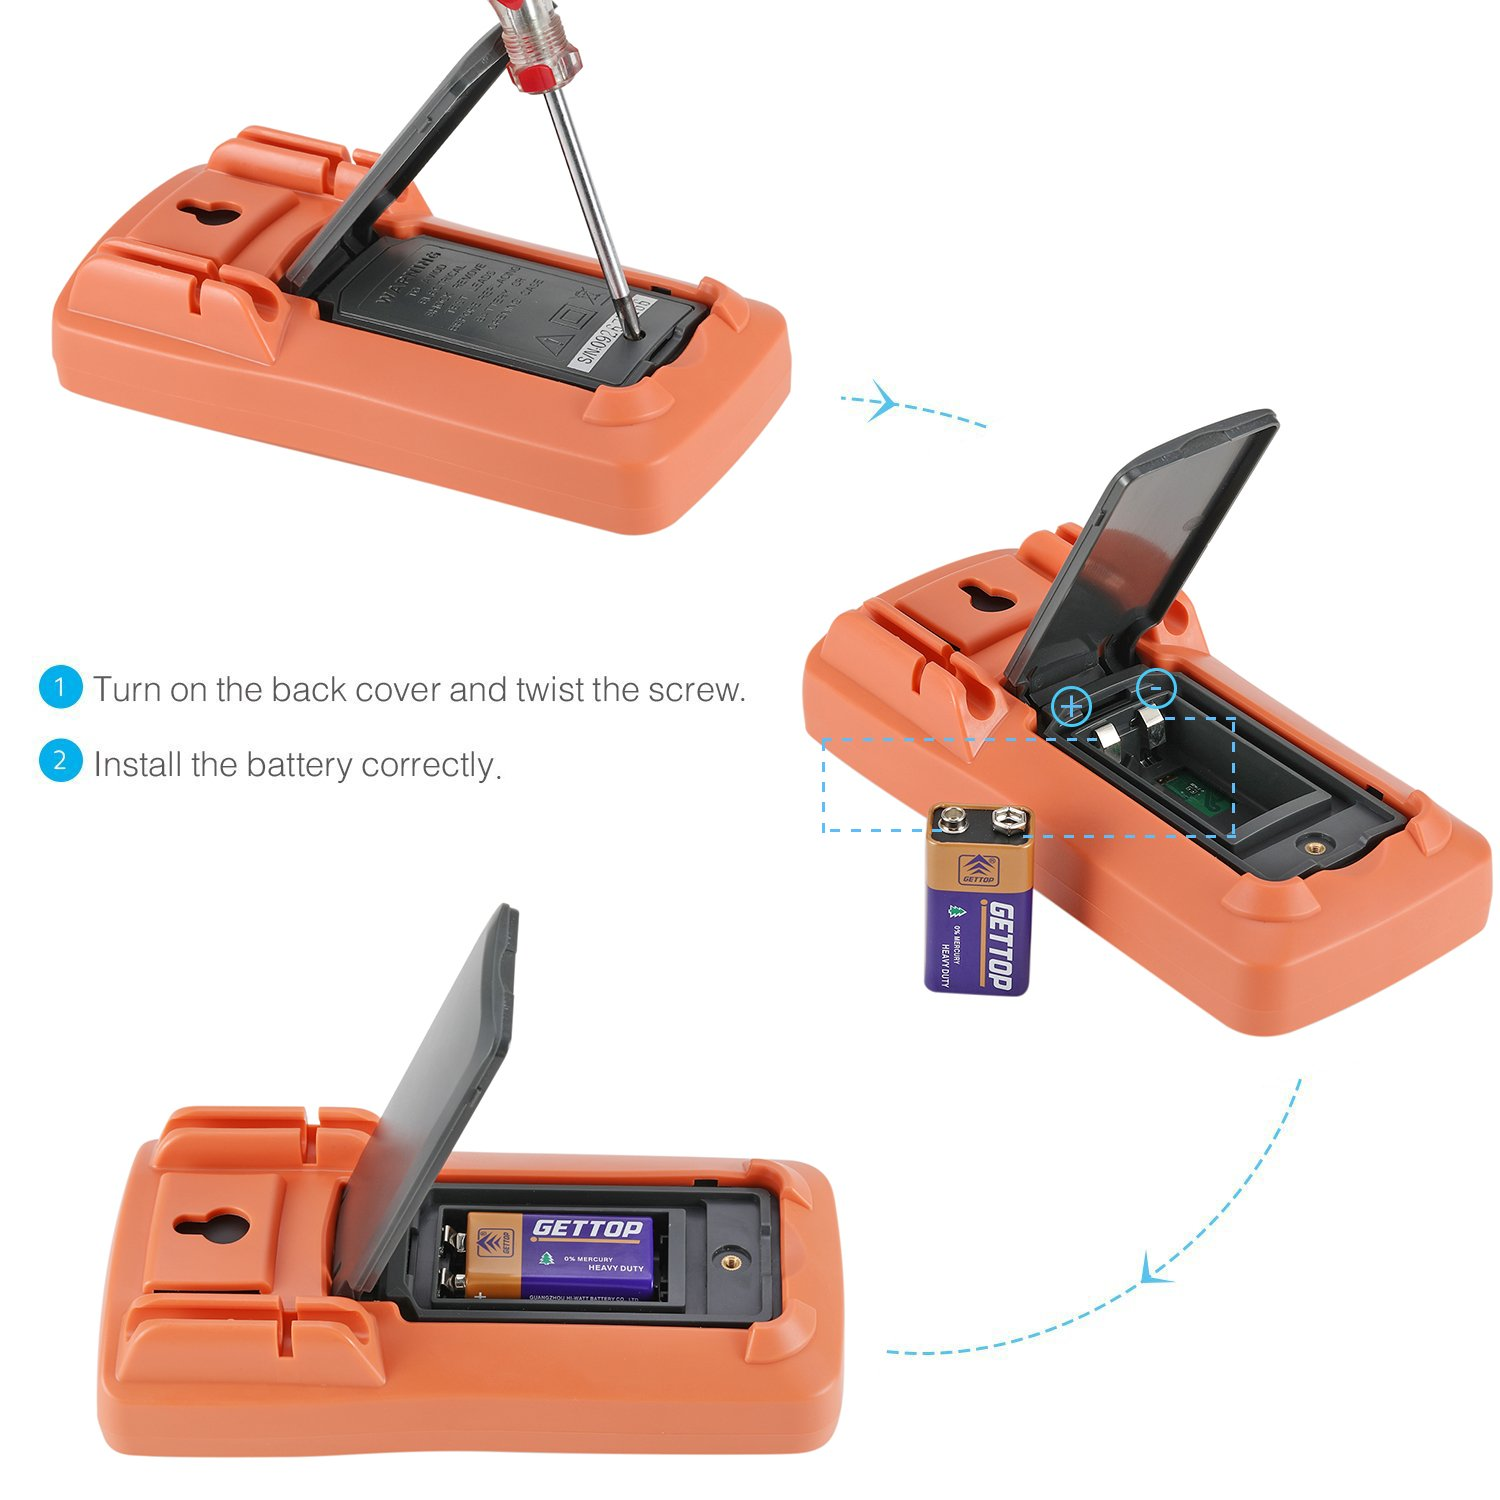 Digital multimeter electronic measuring instrument ac voltage digital multimeter electronic measuring instrument ac voltage detector portable amp ohm volt test meter multi tester diode and continuity test biocorpaavc Image collections